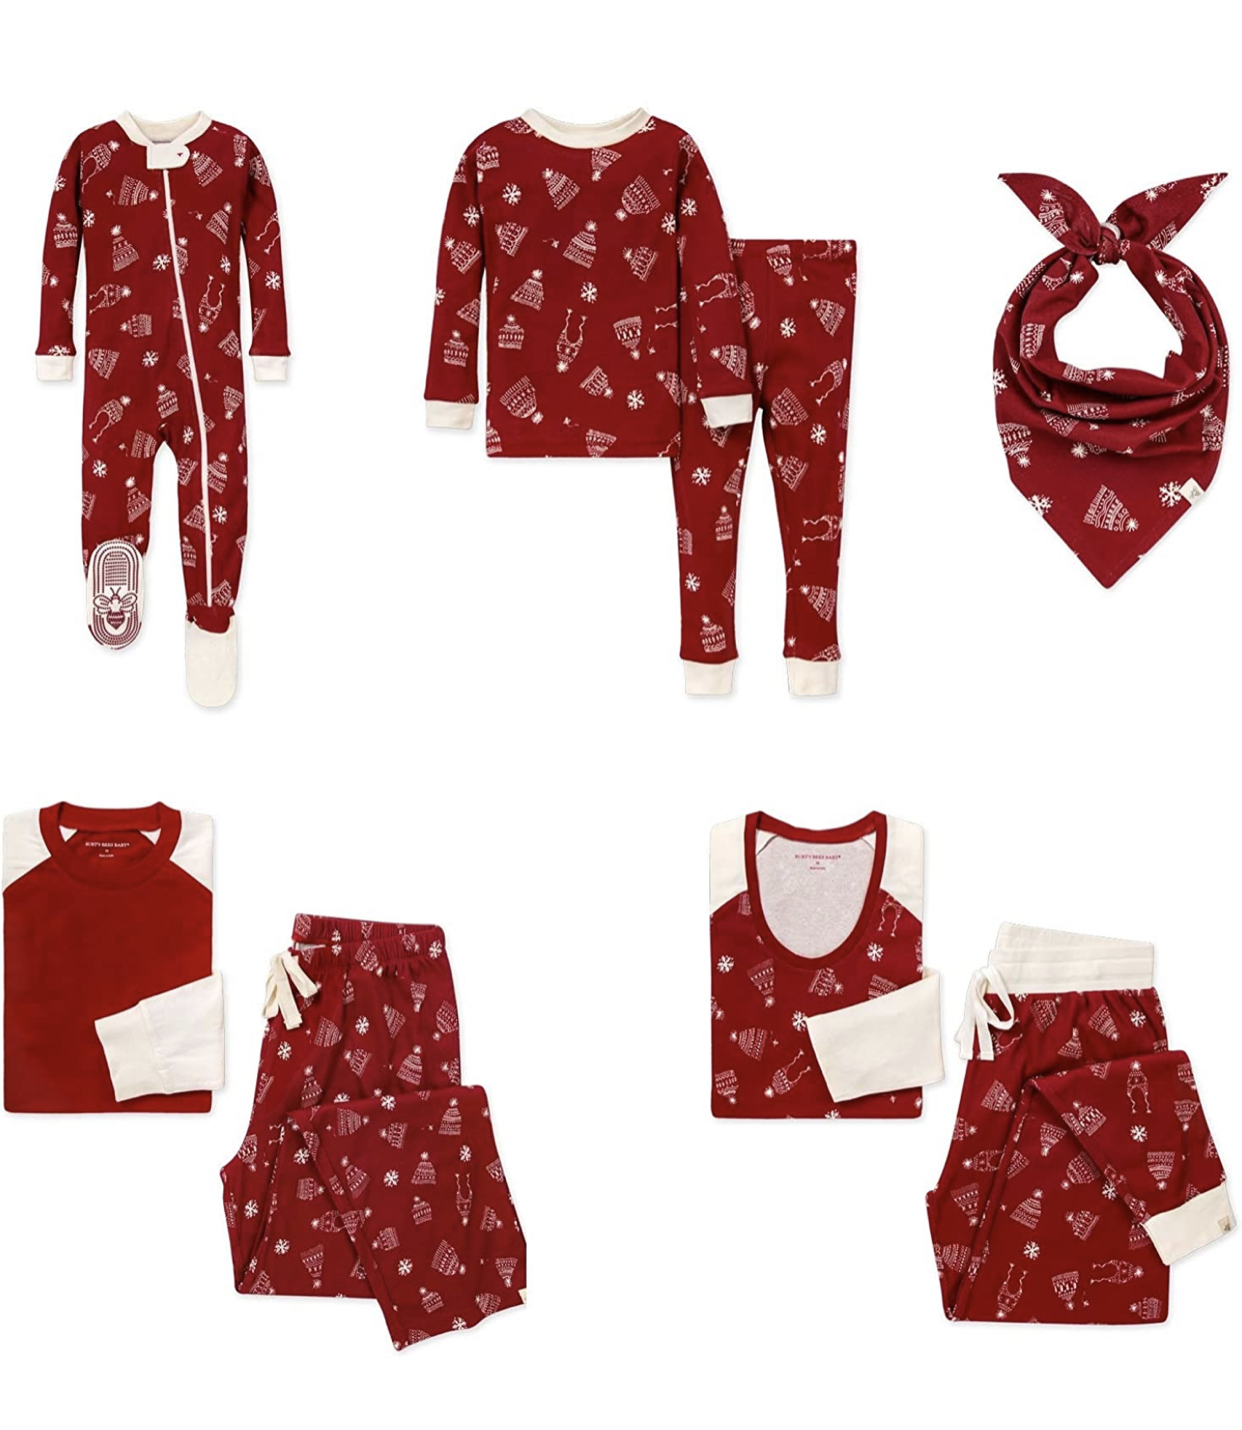 "<p>Yep, add to cart. These Burt's Bees Family Jammies are to die for.{&nbsp;}<a  href=""https://www.amazon.com/Burts-Bees-Baby-Jammies-Matching/dp/B08CS13WL5/ref=mp_s_a_1_7?dchild=1&keywords=matching%2Bfamily%2Bpajamas&qid=1606622861&sprefix=matching&sr=8-7&th=1&psc=1"" target=""_blank"" title=""https://www.amazon.com/Burts-Bees-Baby-Jammies-Matching/dp/B08CS13WL5/ref=mp_s_a_1_7?dchild=1&keywords=matching%2Bfamily%2Bpajamas&qid=1606622861&sprefix=matching&sr=8-7&th=1&psc=1"">Shop the look</a>.{&nbsp;} (Image: Amazon){&nbsp;}</p>"